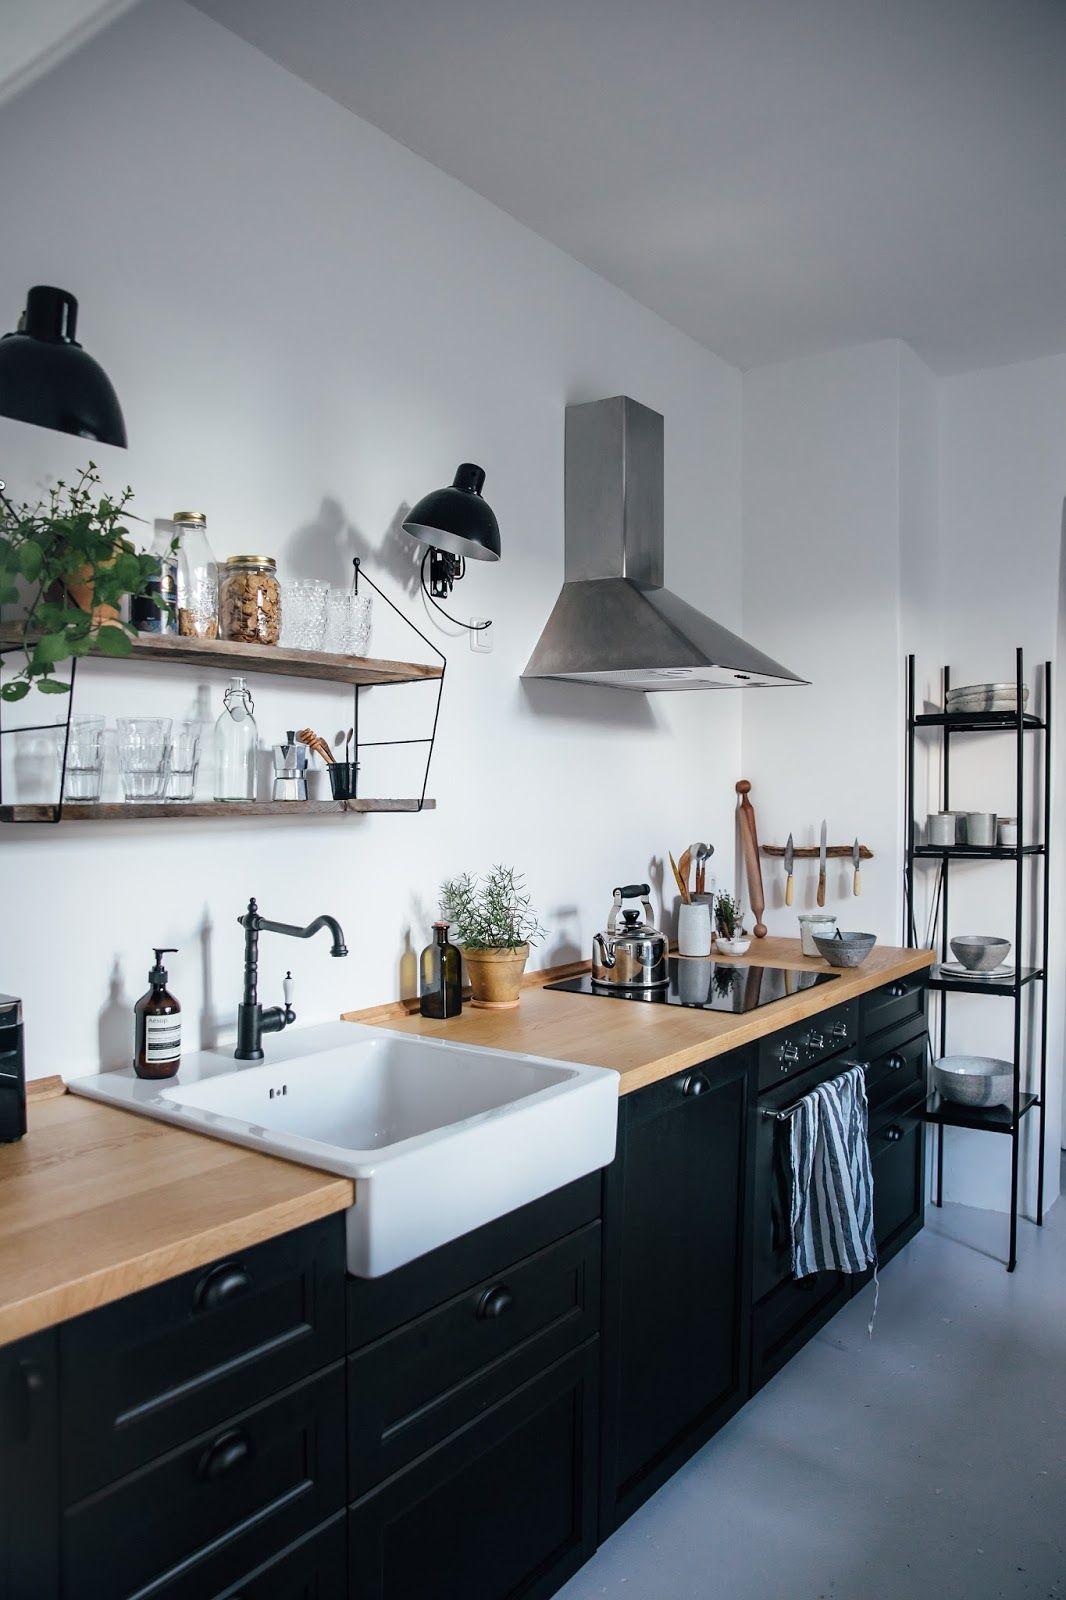 Country kitchen by our food stories | Cuisine | Pinterest | Cocinas ...